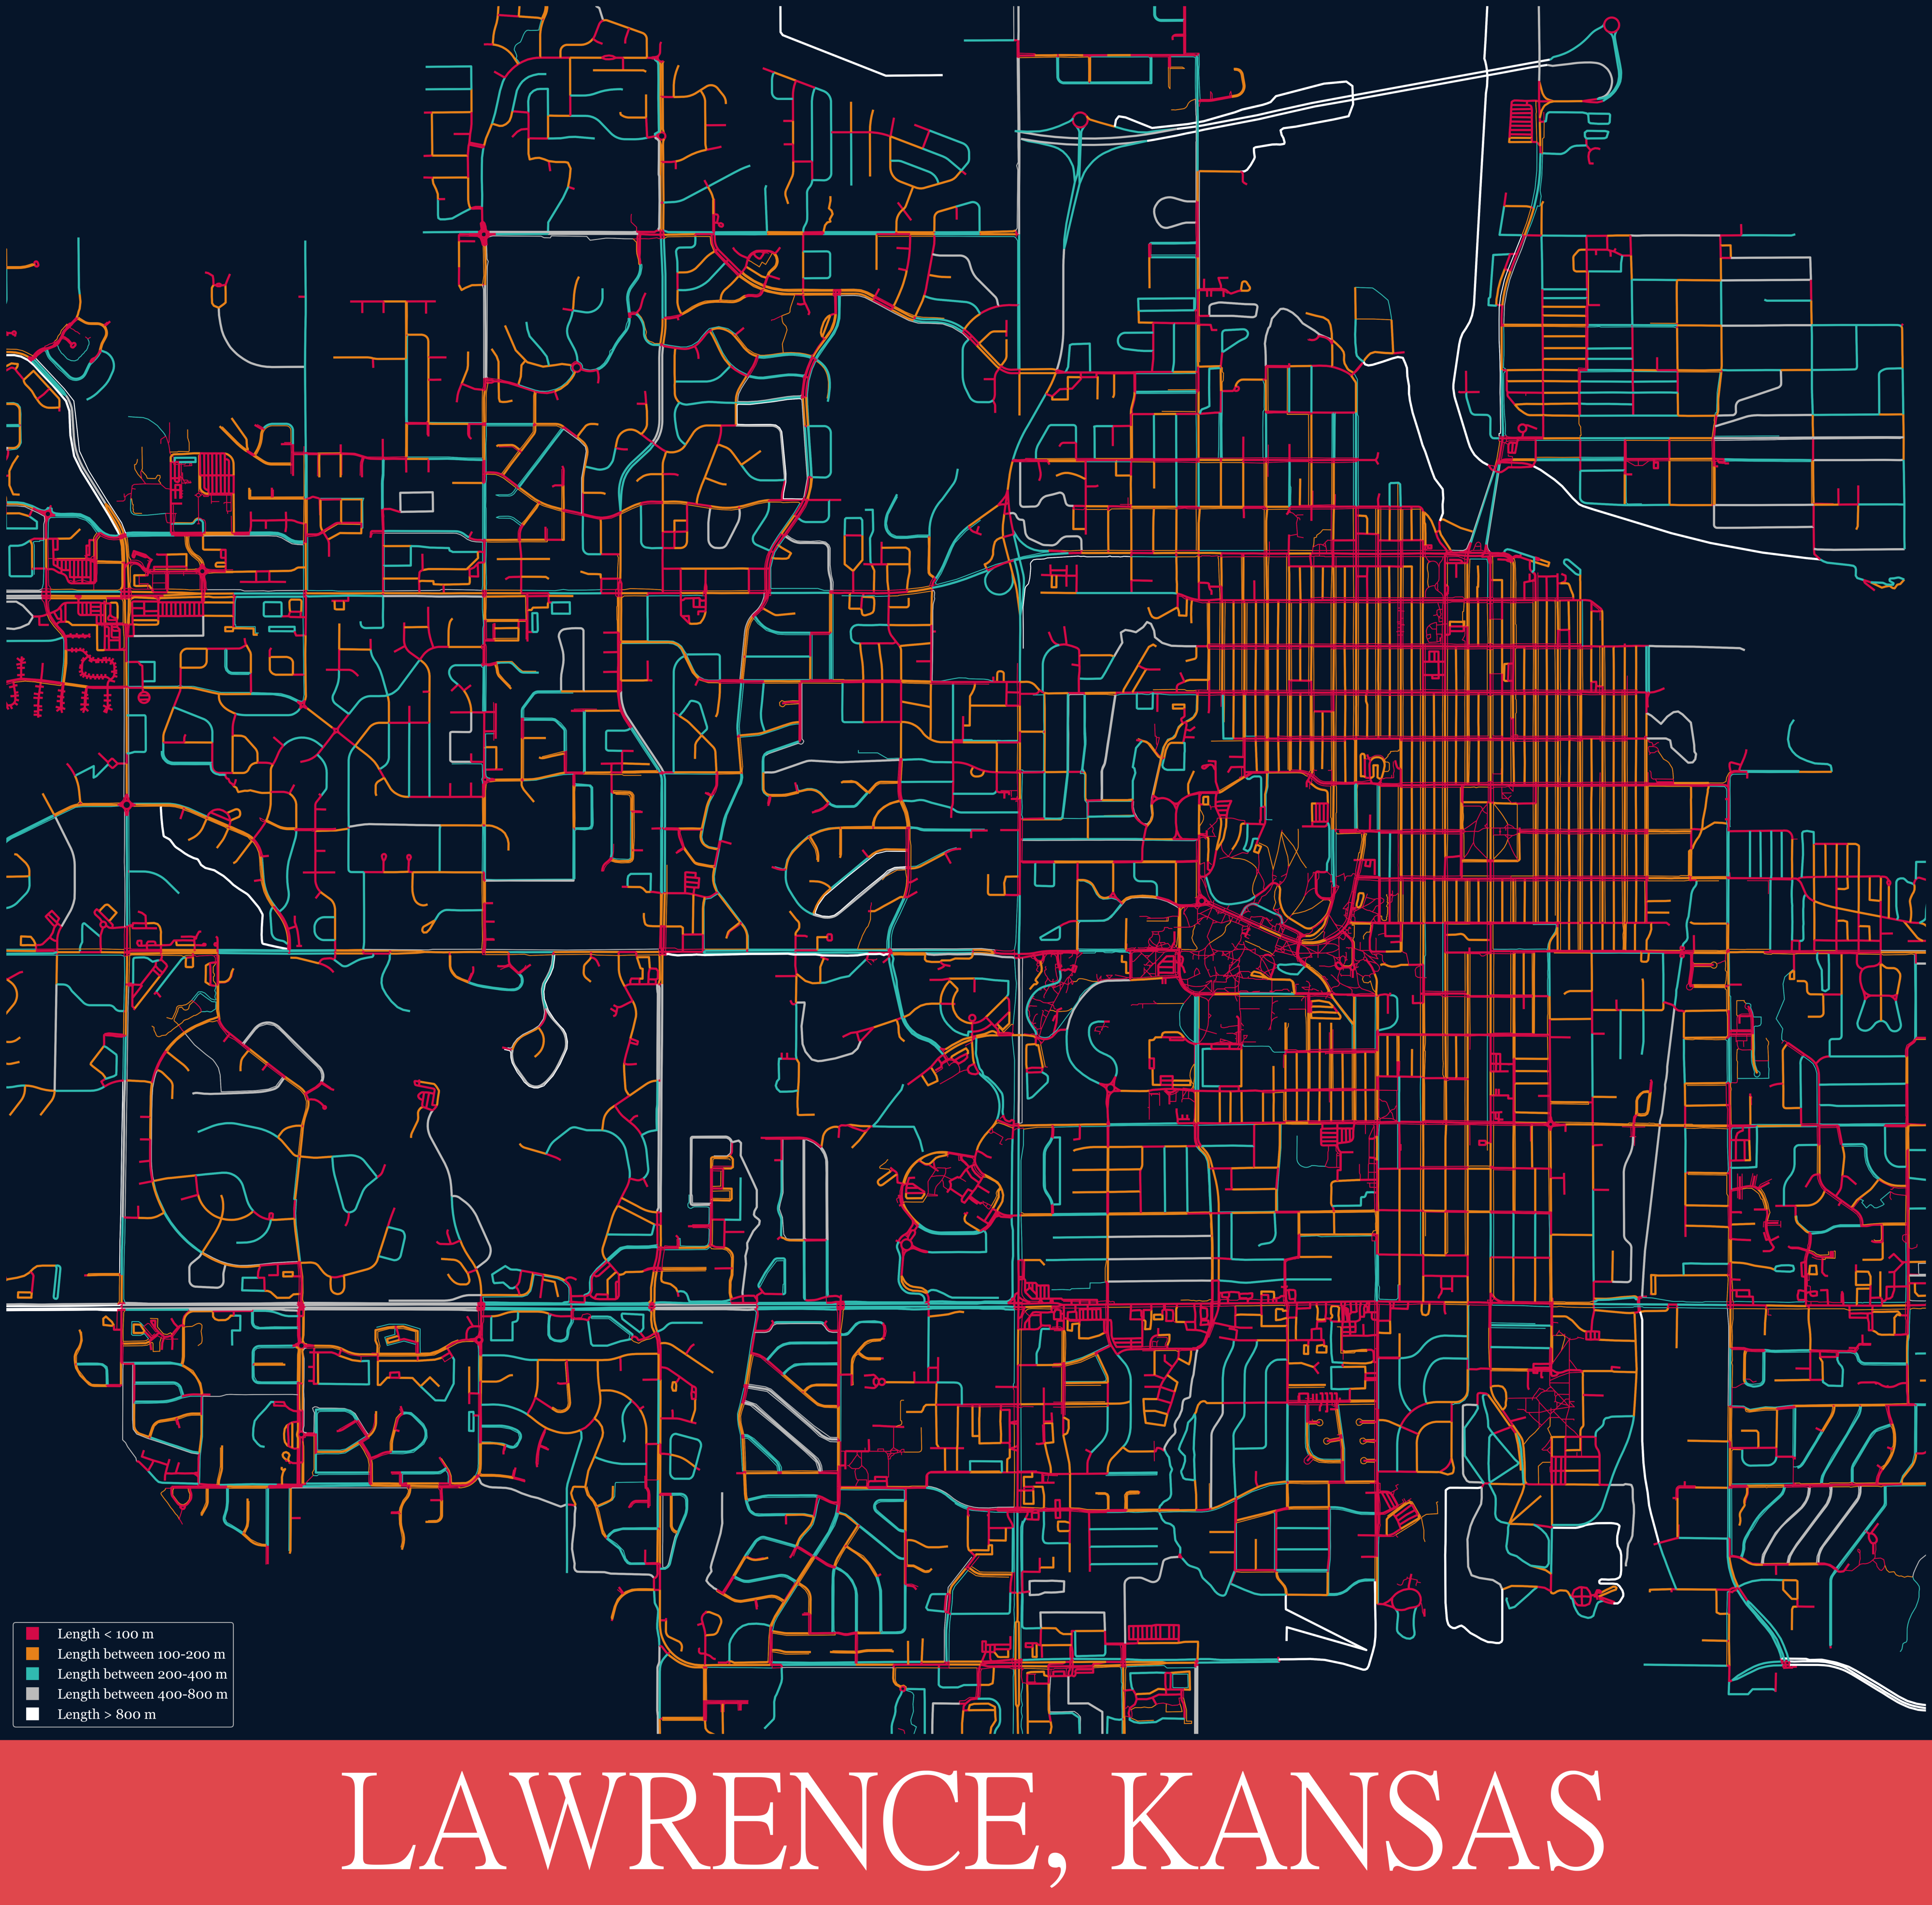 kansas speed limit map Making Artistic Maps With Python Rock Chalk Jayhawk By Frank kansas speed limit map